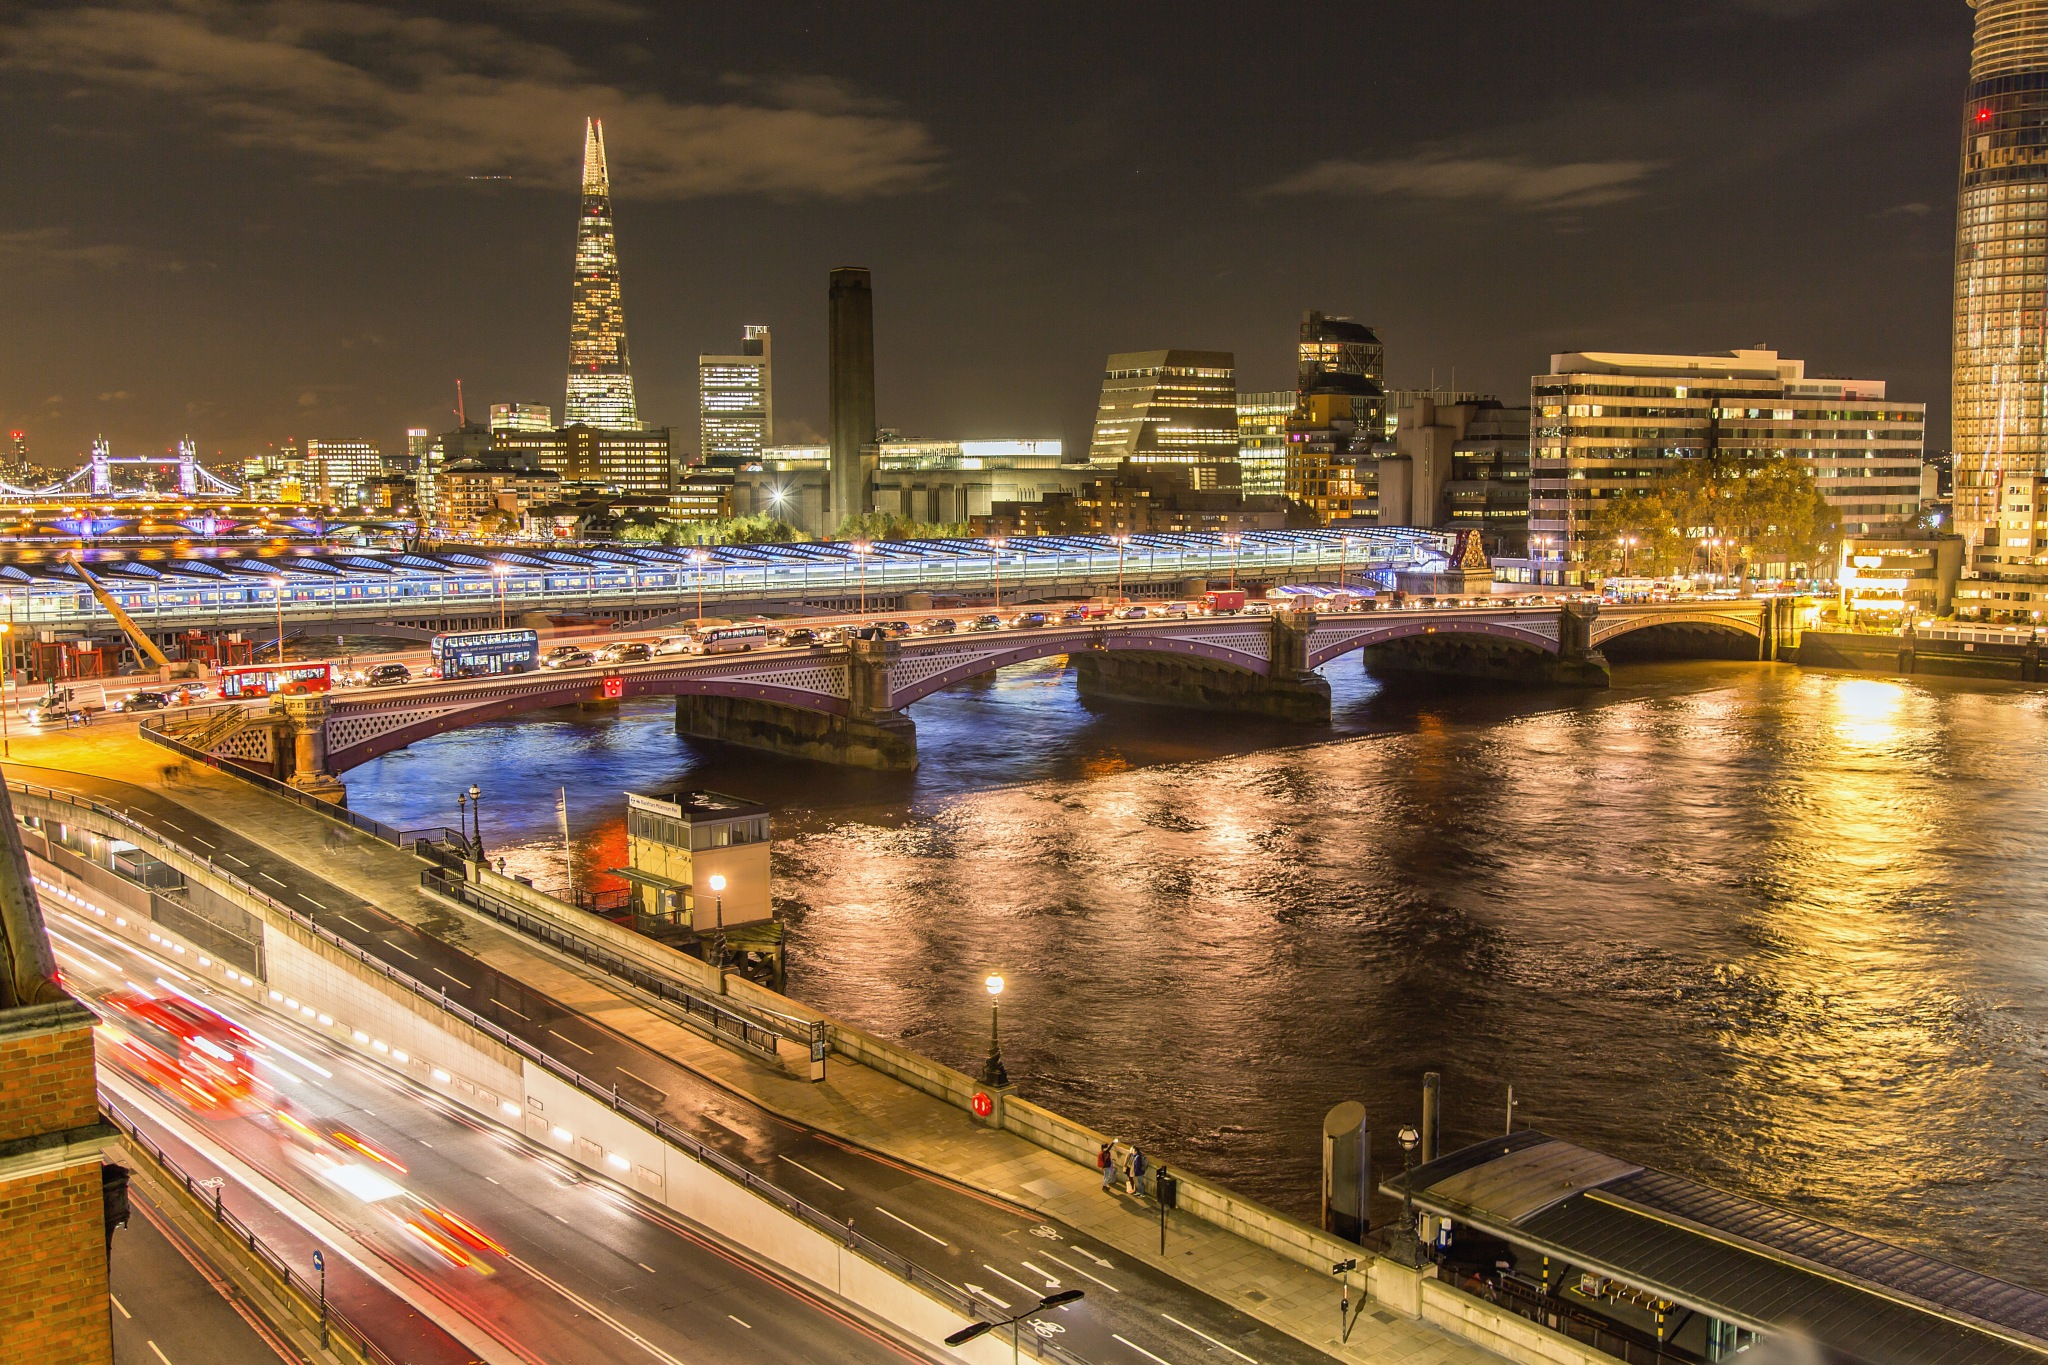 Night in London by Philip Cooper